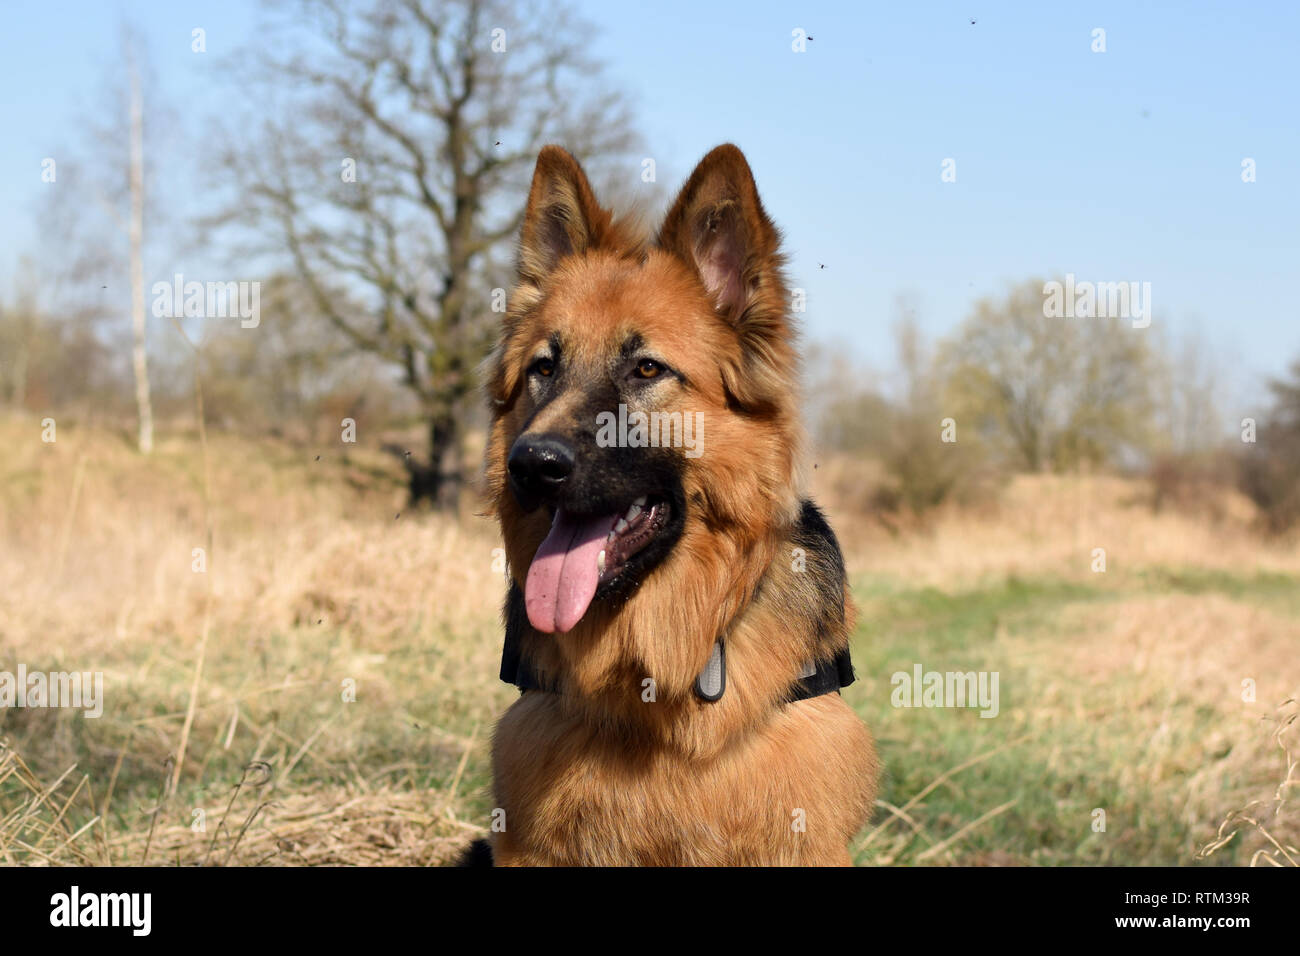 Young Old (Longhaired) German Shepherd lies on meadow in sunny day. Stock Photo